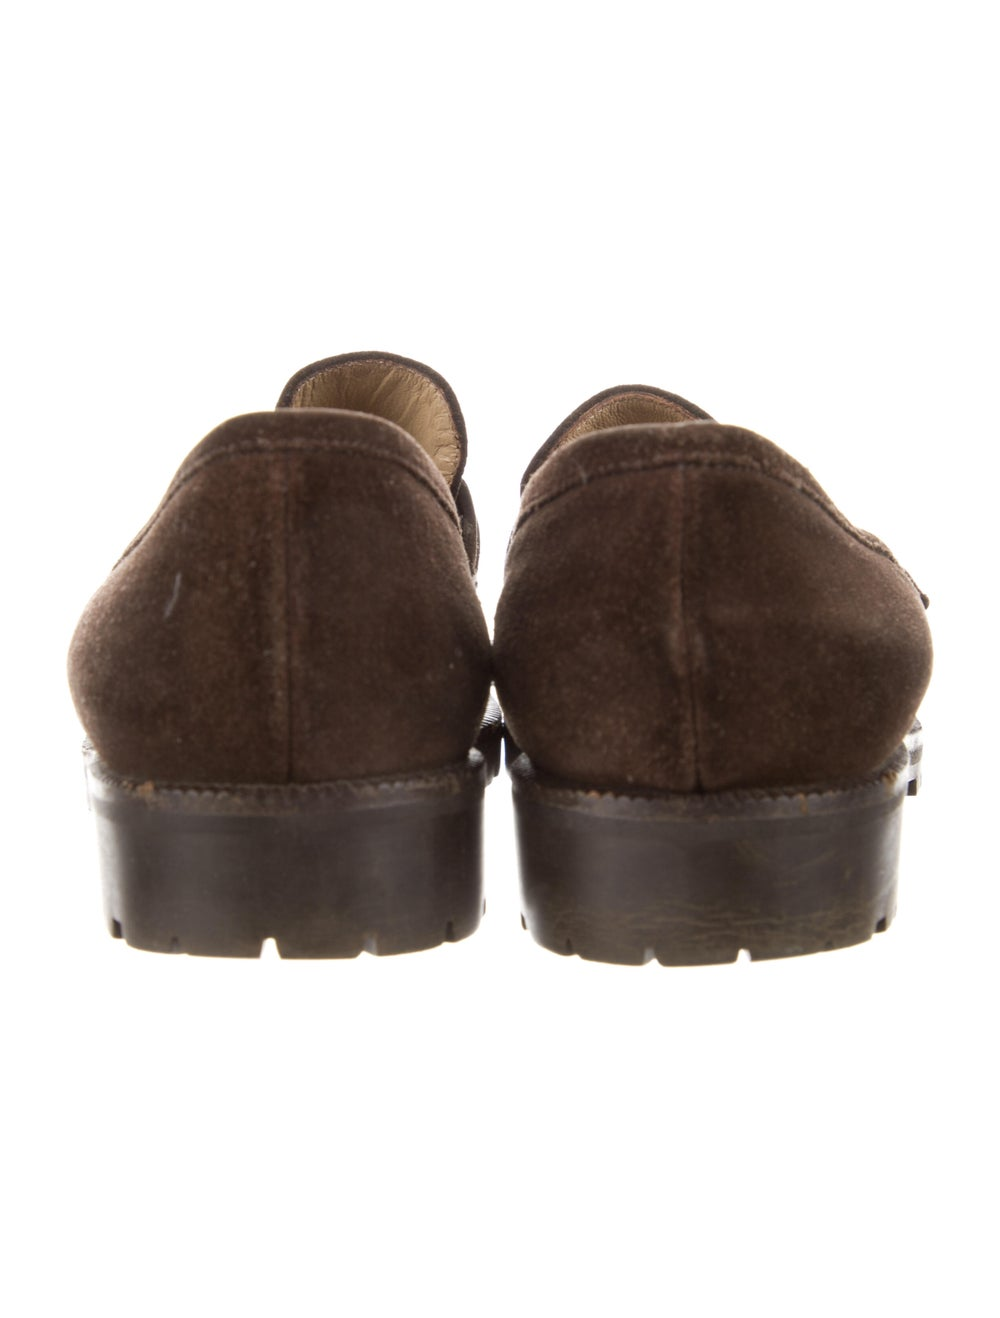 Gucci Horsebit Accent Suede Loafers Brown - image 4